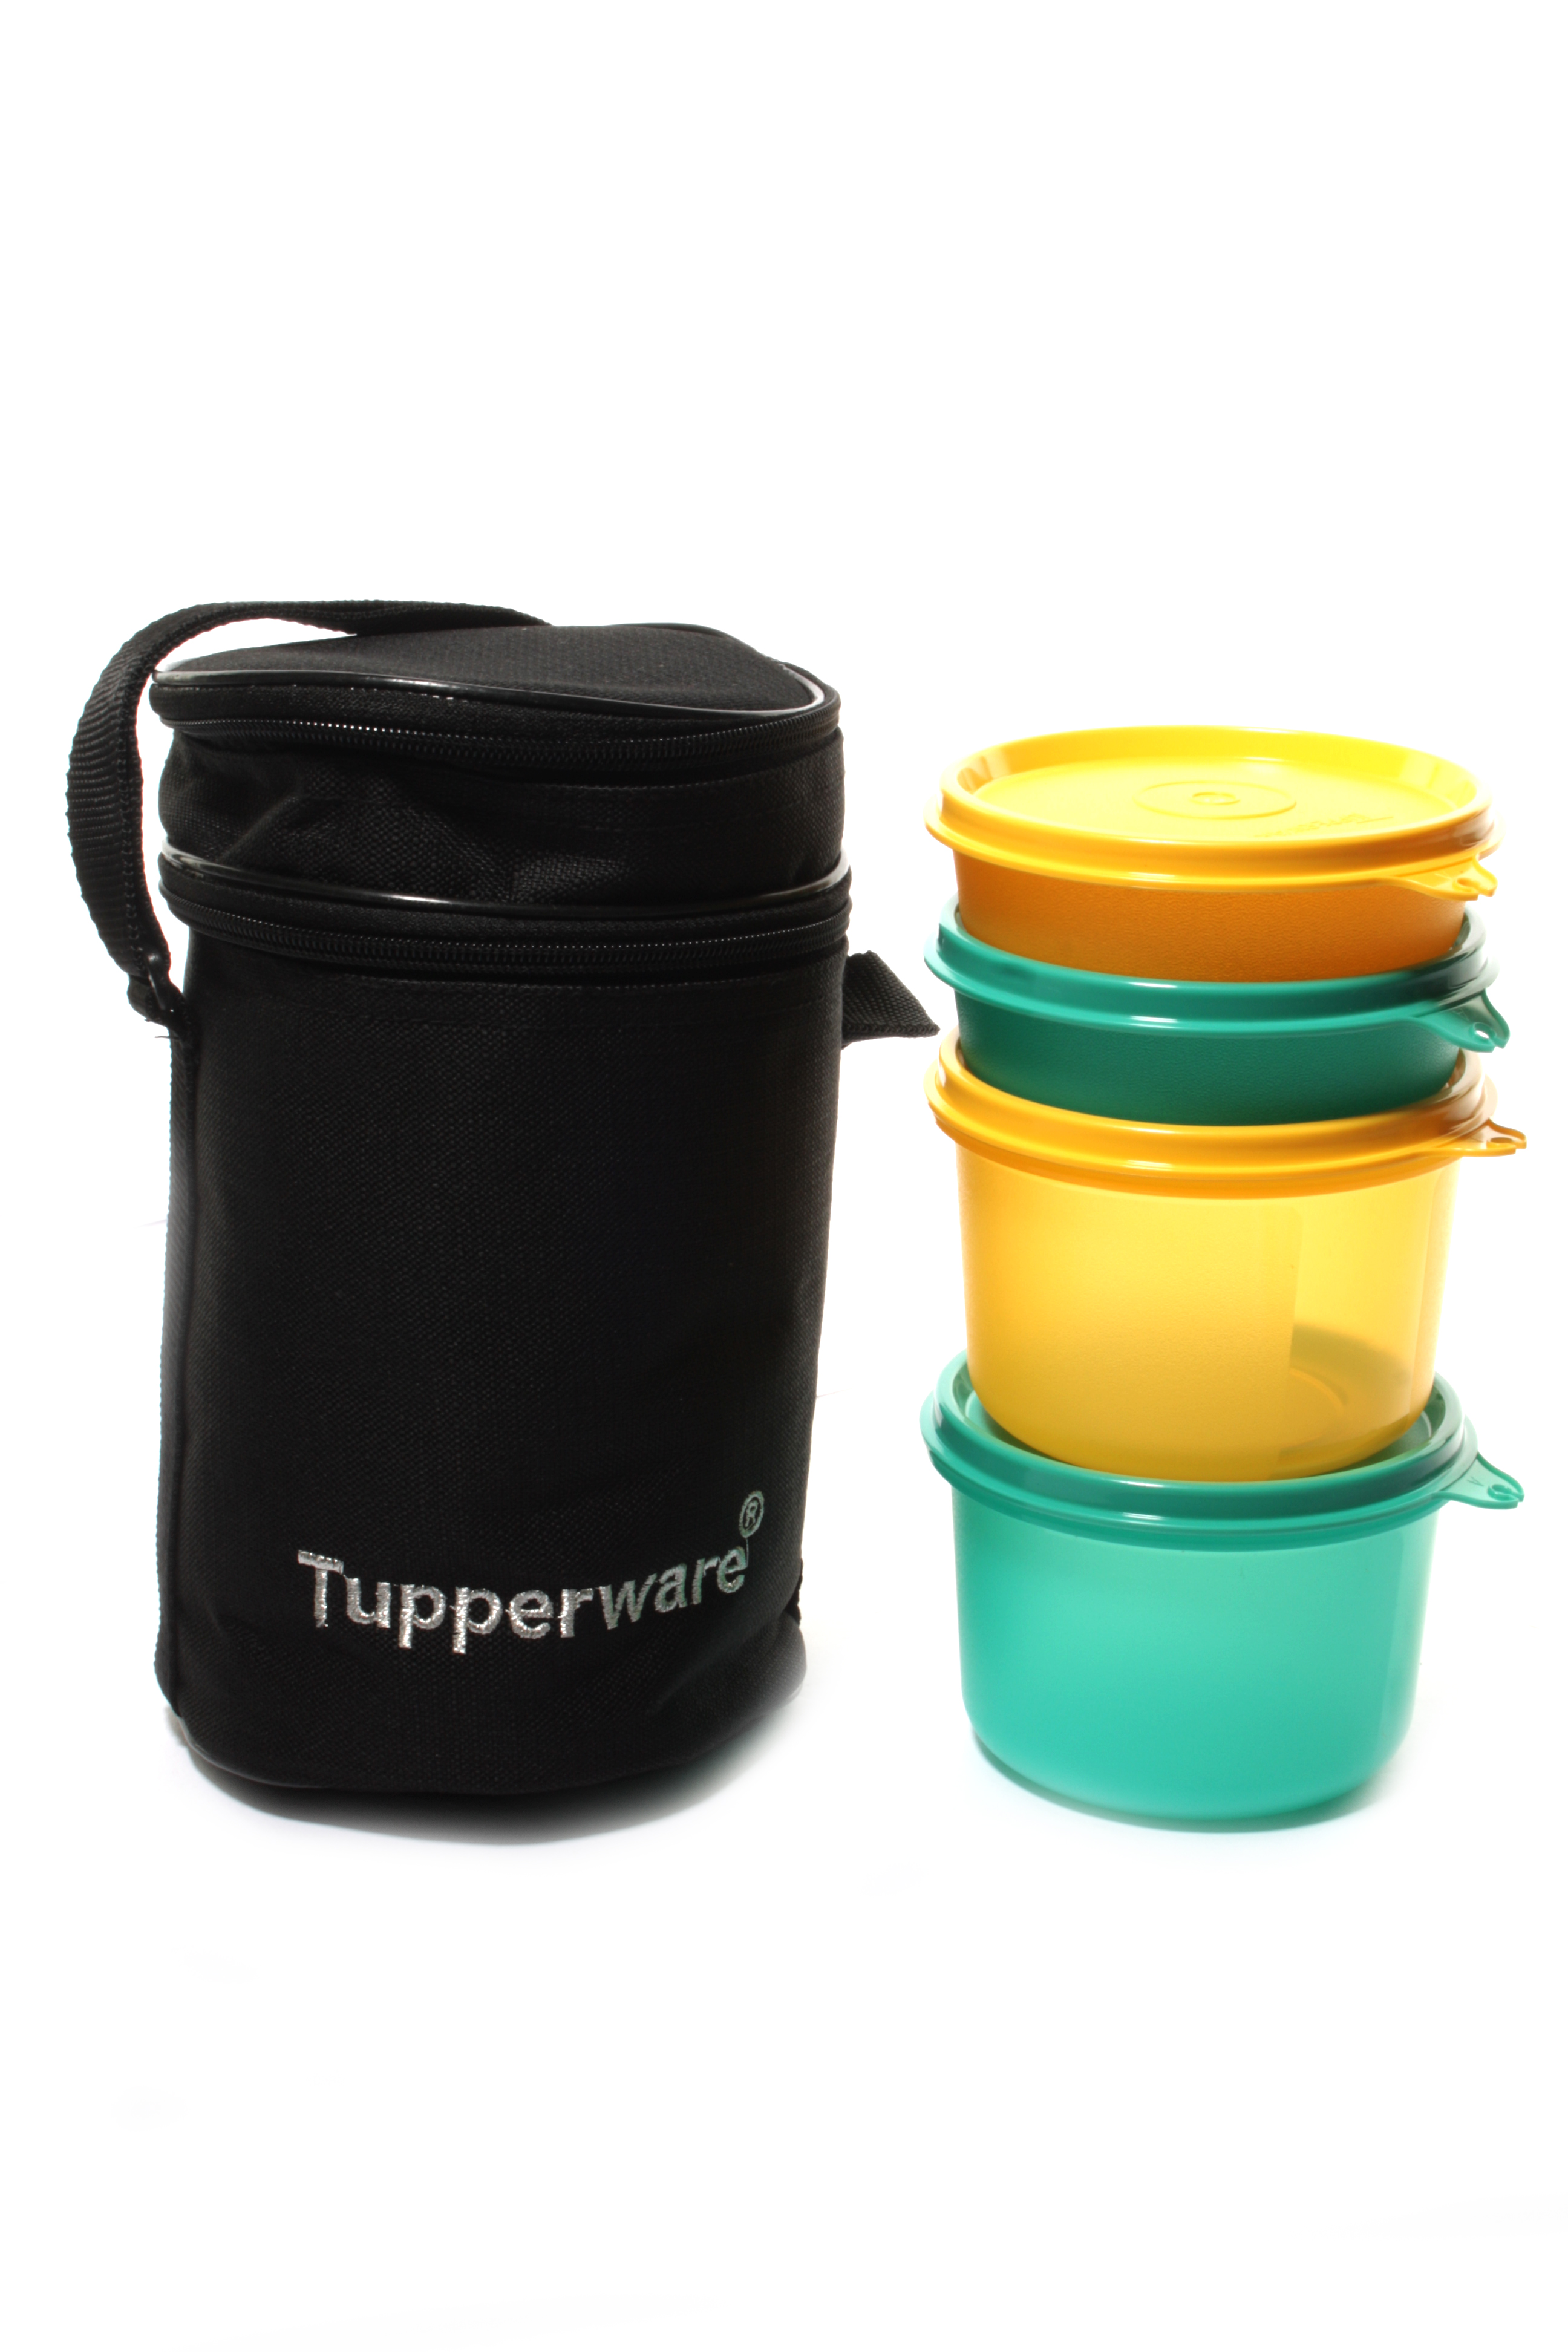 shop tupperware executive lunch box with insulated bag 4 bowls black bag online shopclues. Black Bedroom Furniture Sets. Home Design Ideas